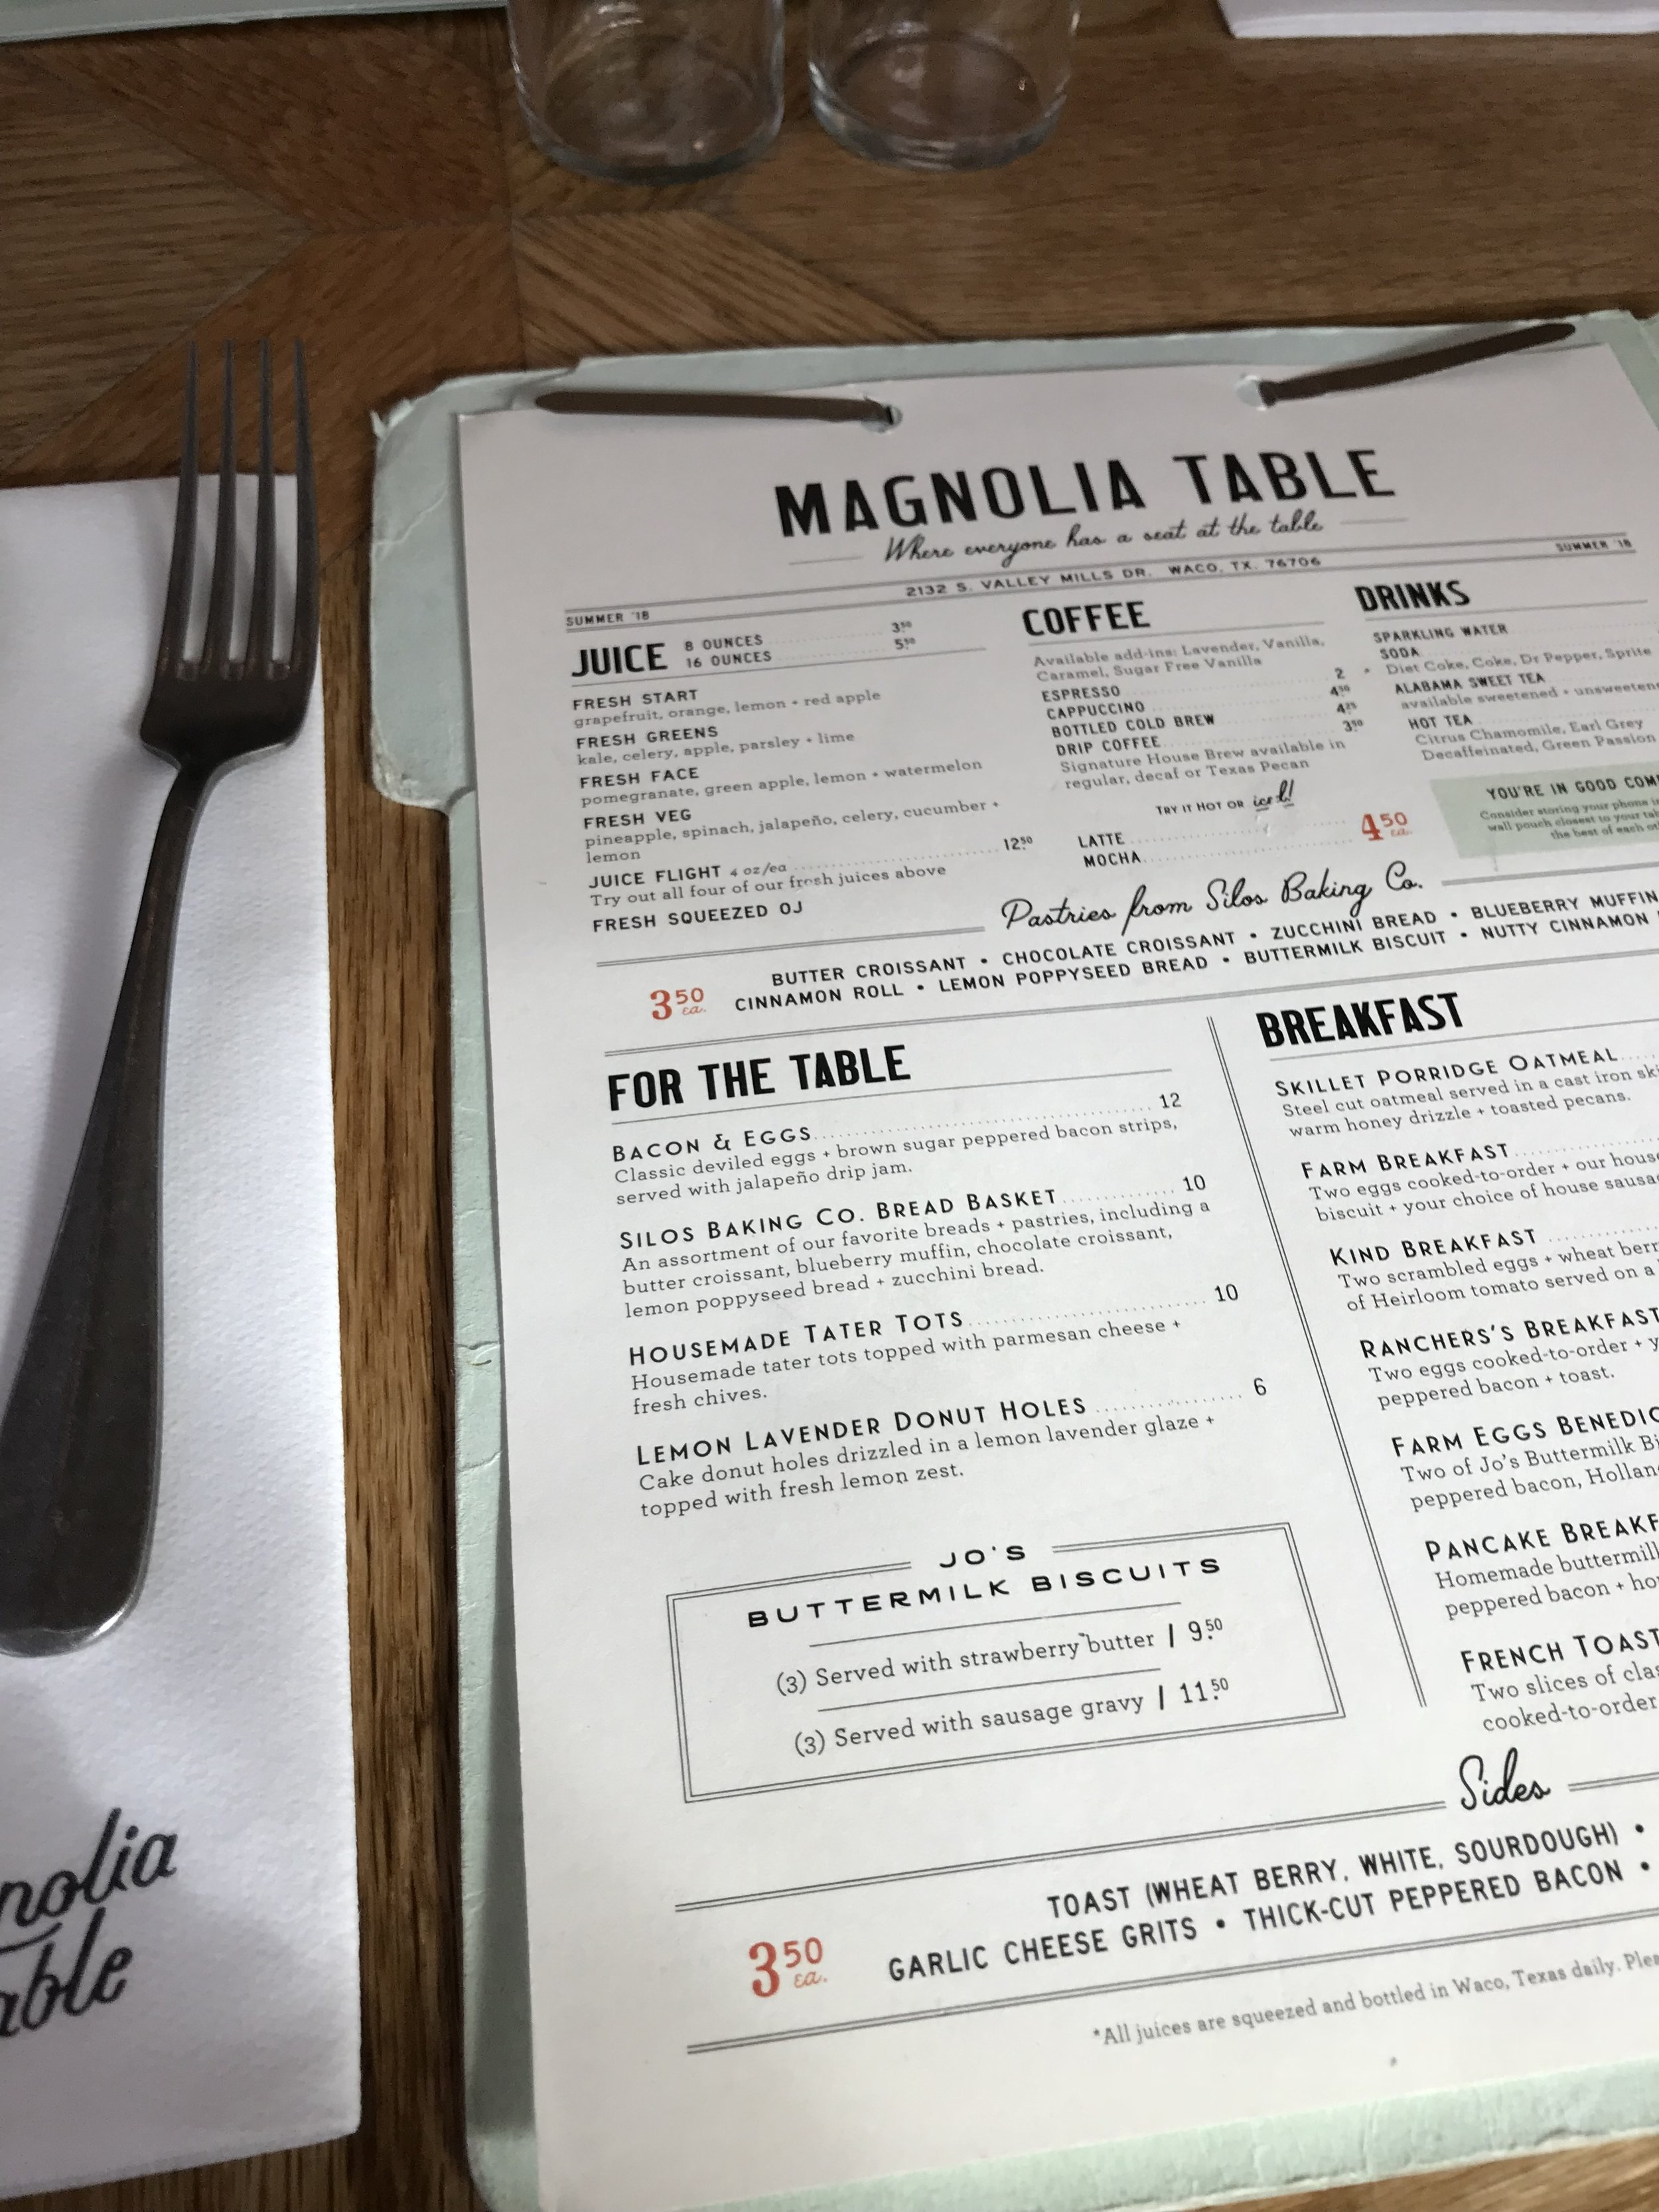 So many delicious things on the menu! It was hard to choose. Some of the items can be found to make at home in the Magnolia Table cookbook!